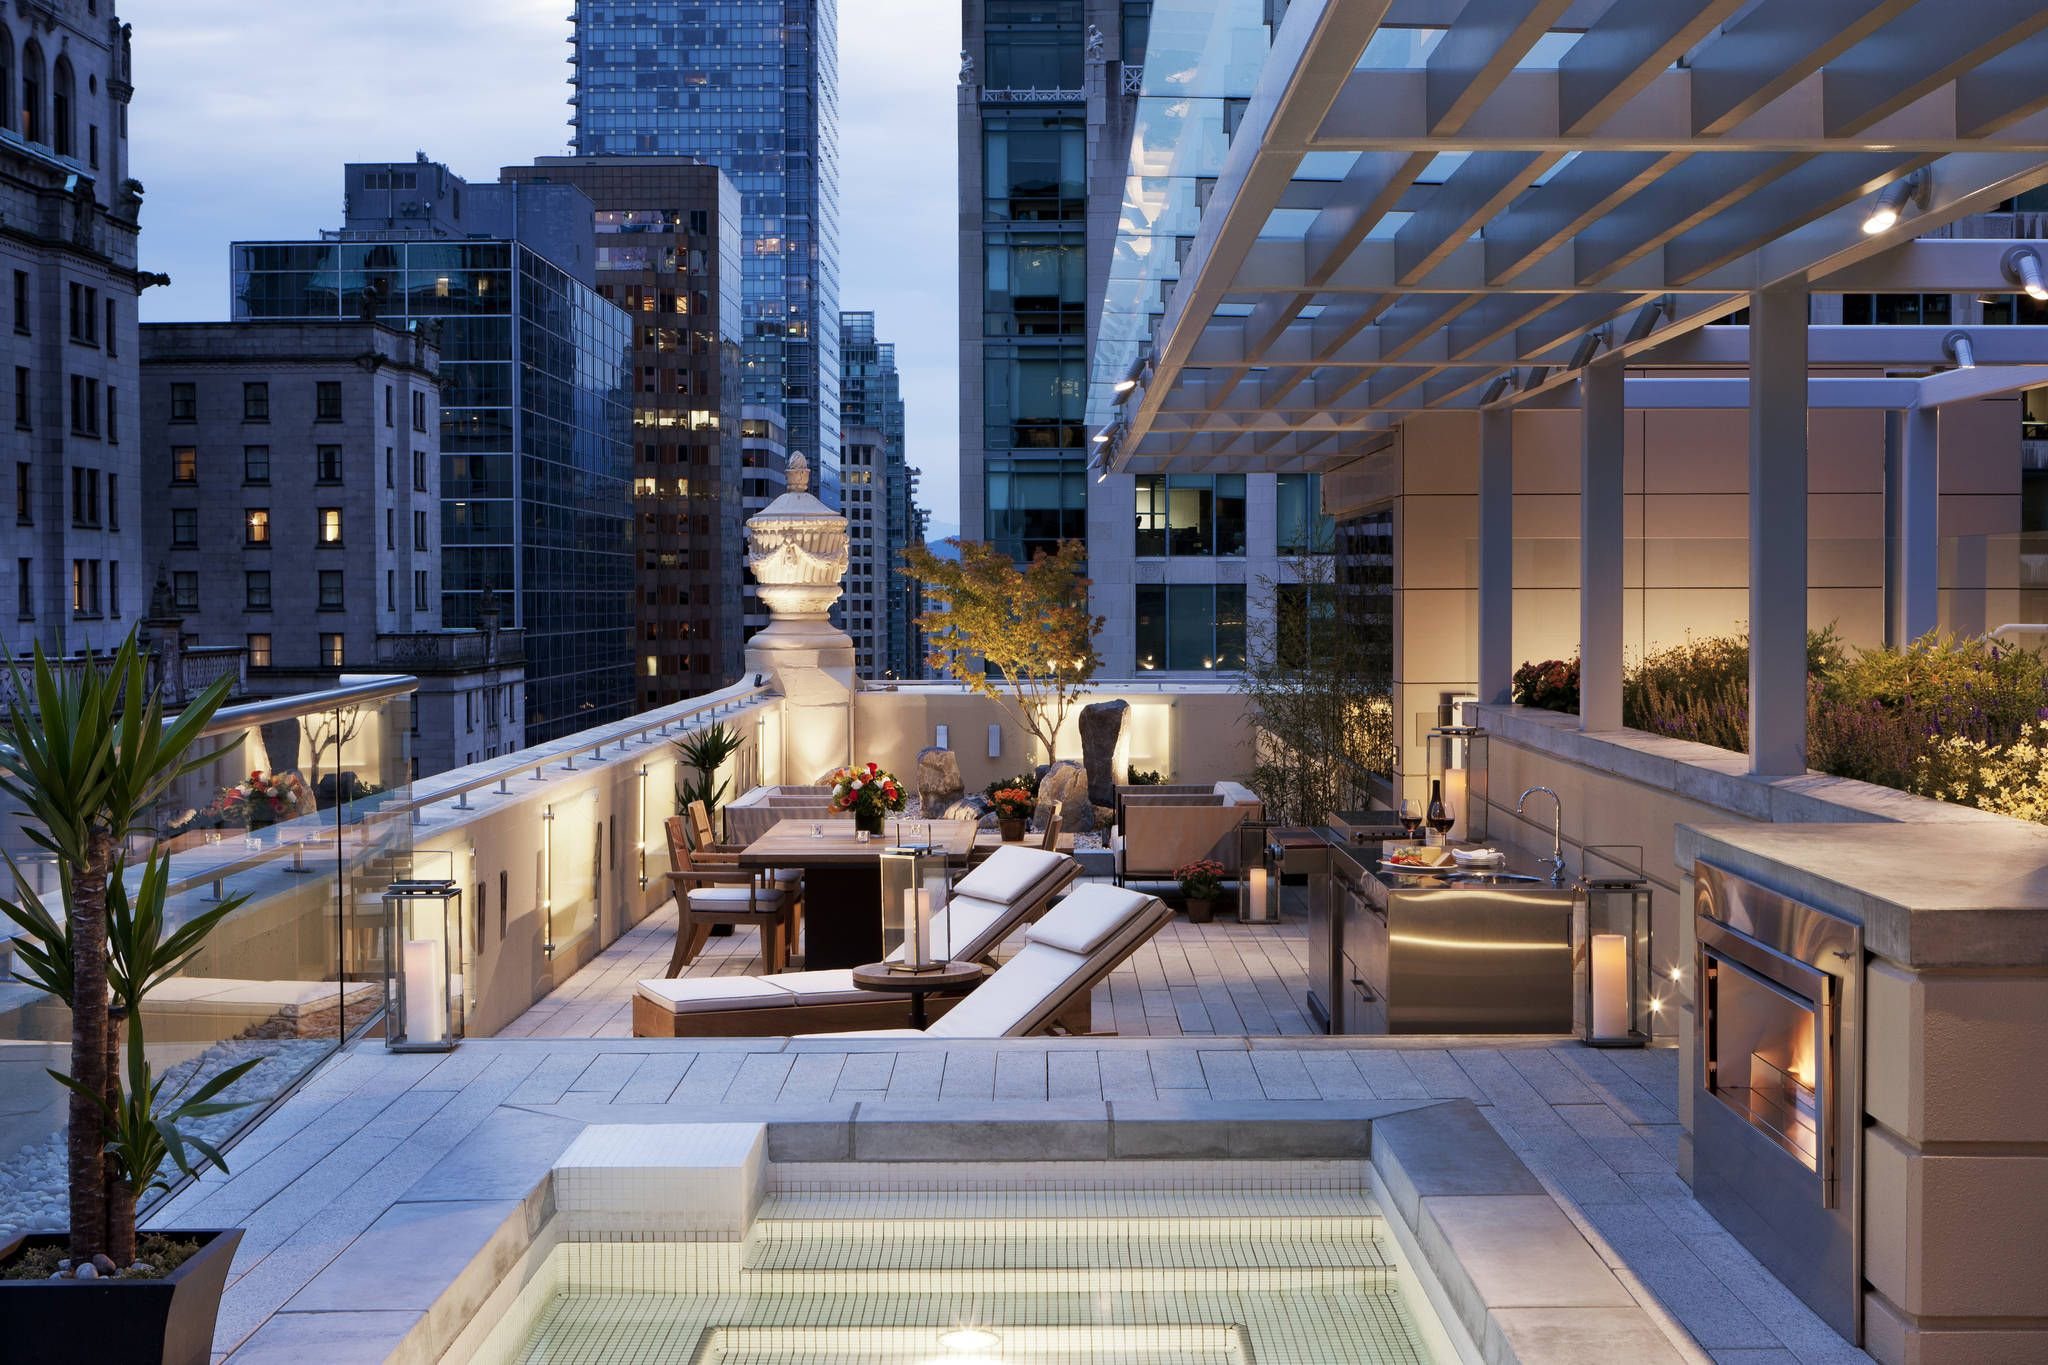 Handpicked luxury hotel today rosewood hotel georgia north america canada